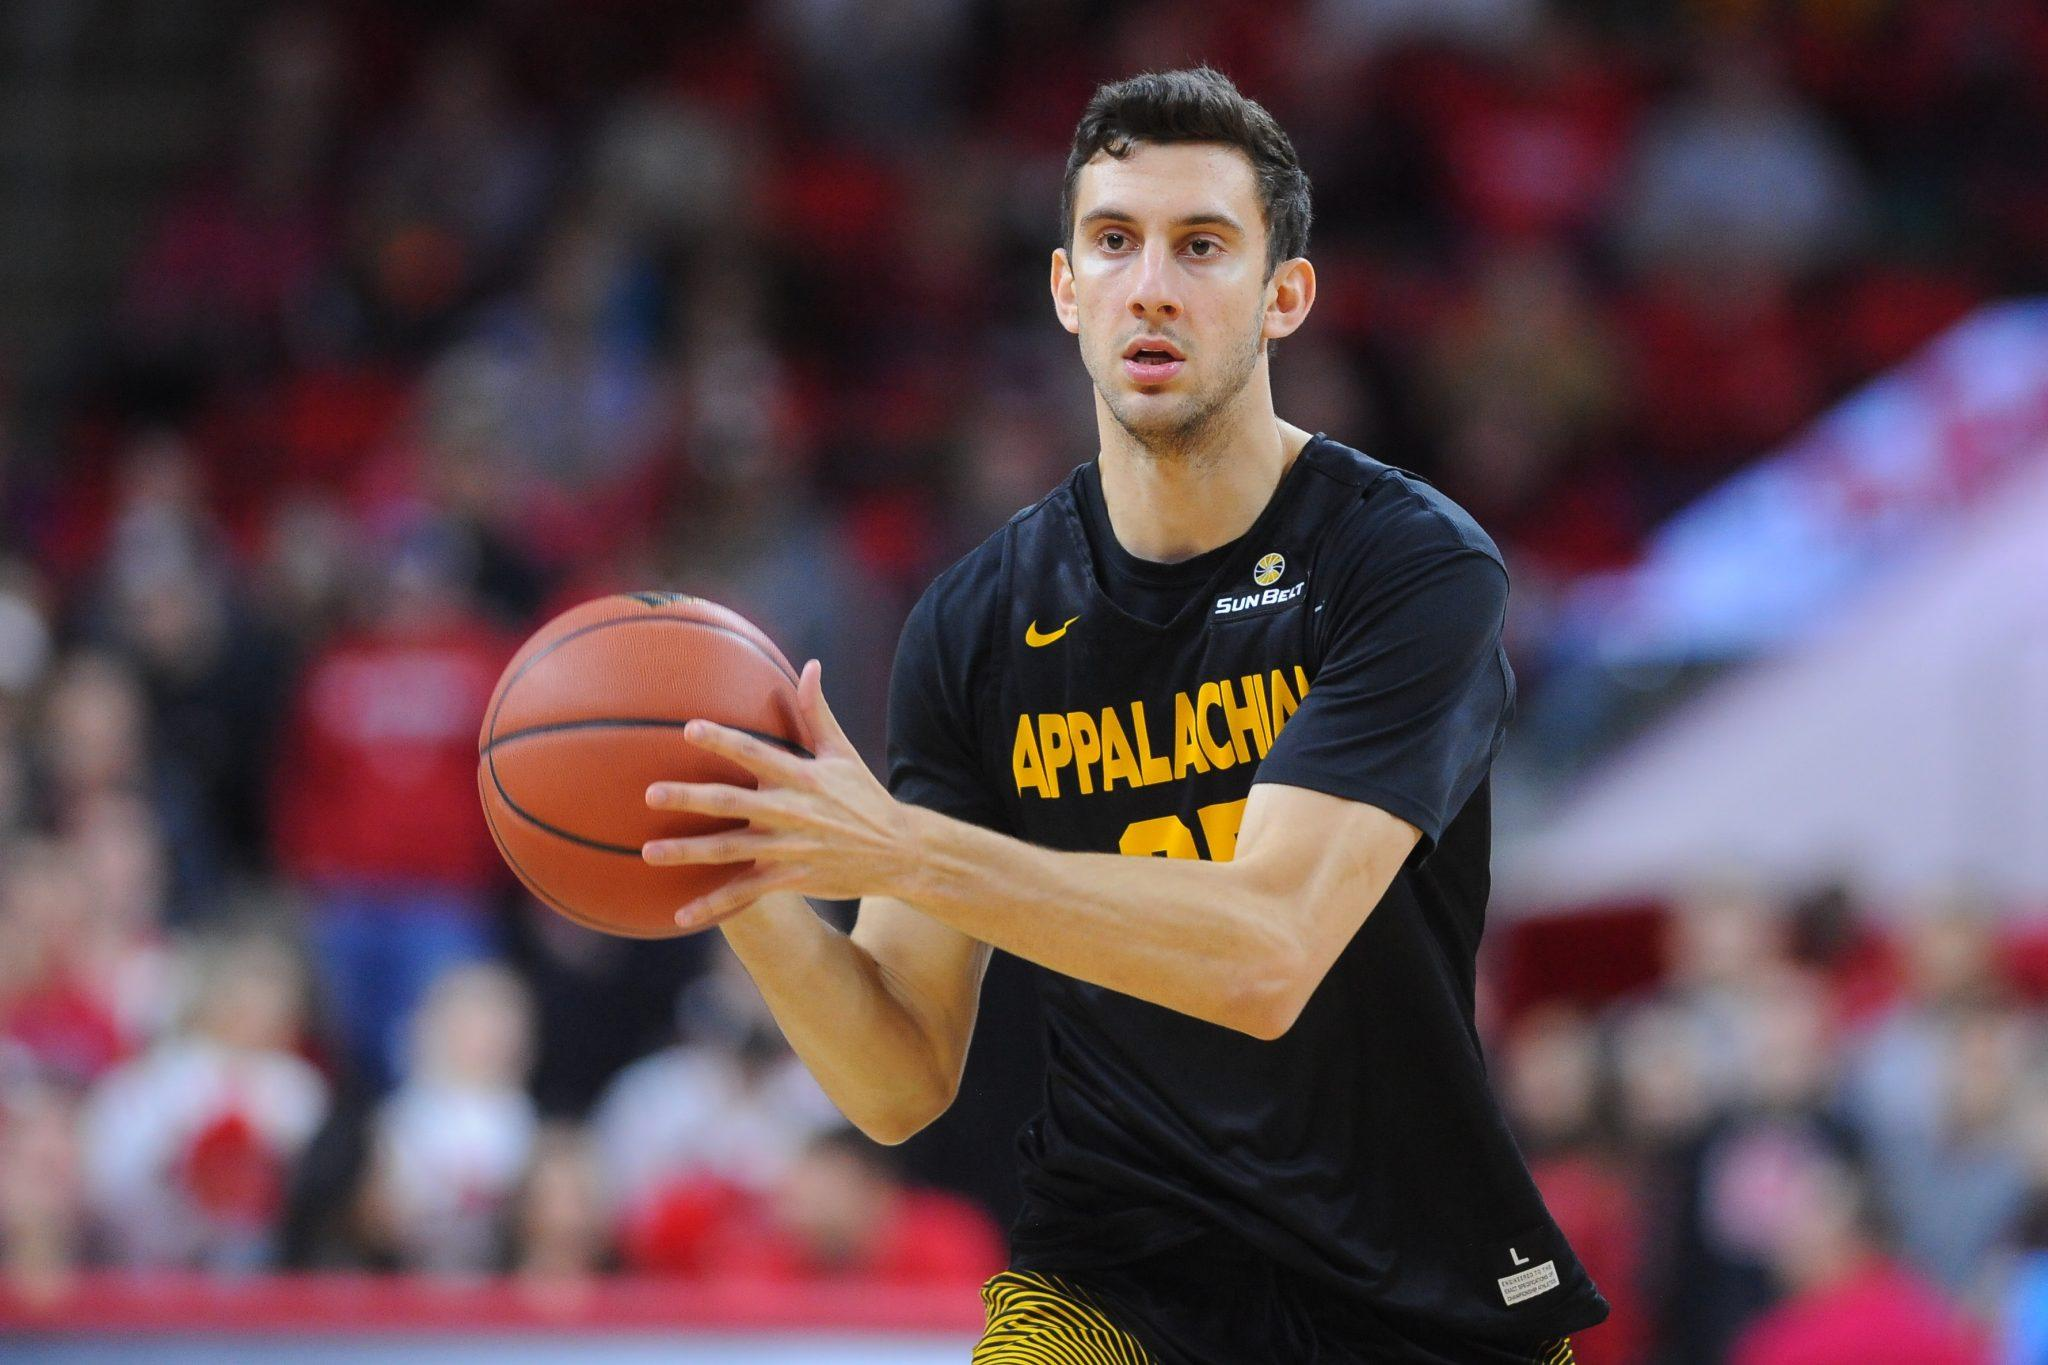 Appalachian+State+takes+on+NC+State+in+non-conference+men%27s+basketball+action+at+PNC+Arena+on+Thursday%2C+December+15%2C+2016+in+Raleigh%2C+North+Carolina.%0APhoto+courtesy%3A+App+State+Athletics%2FTim+Cowie